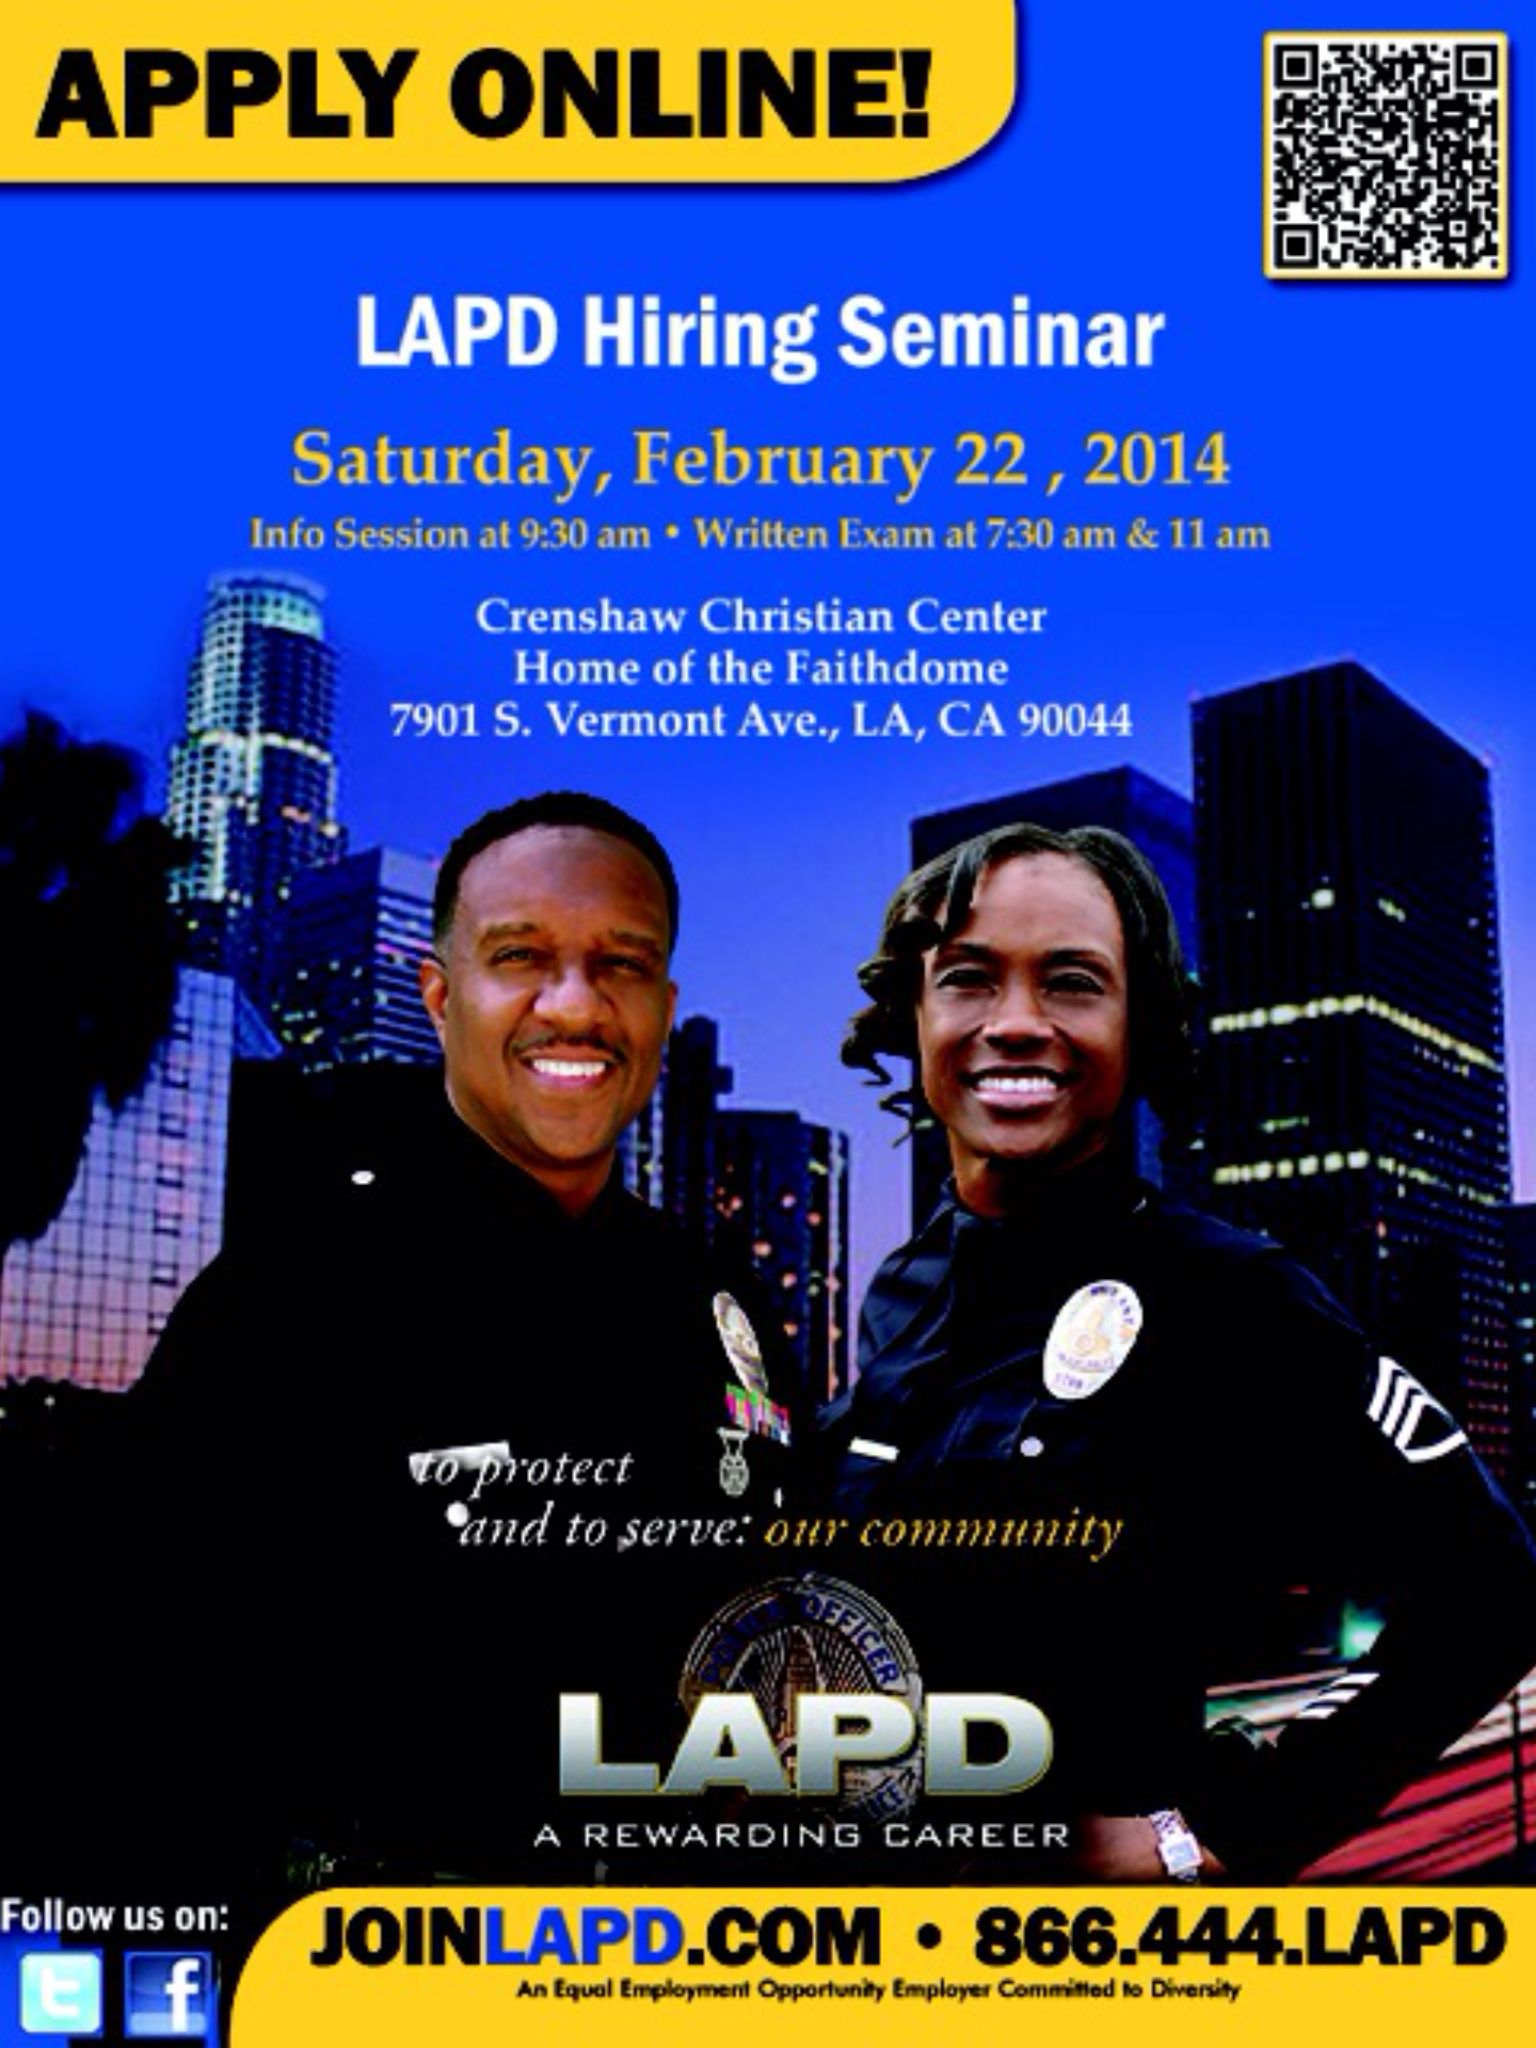 Join Us Saay February 22 2017 For The Lapd Hiring Seminar More Information Visit Joinlapd Or Call 866 444